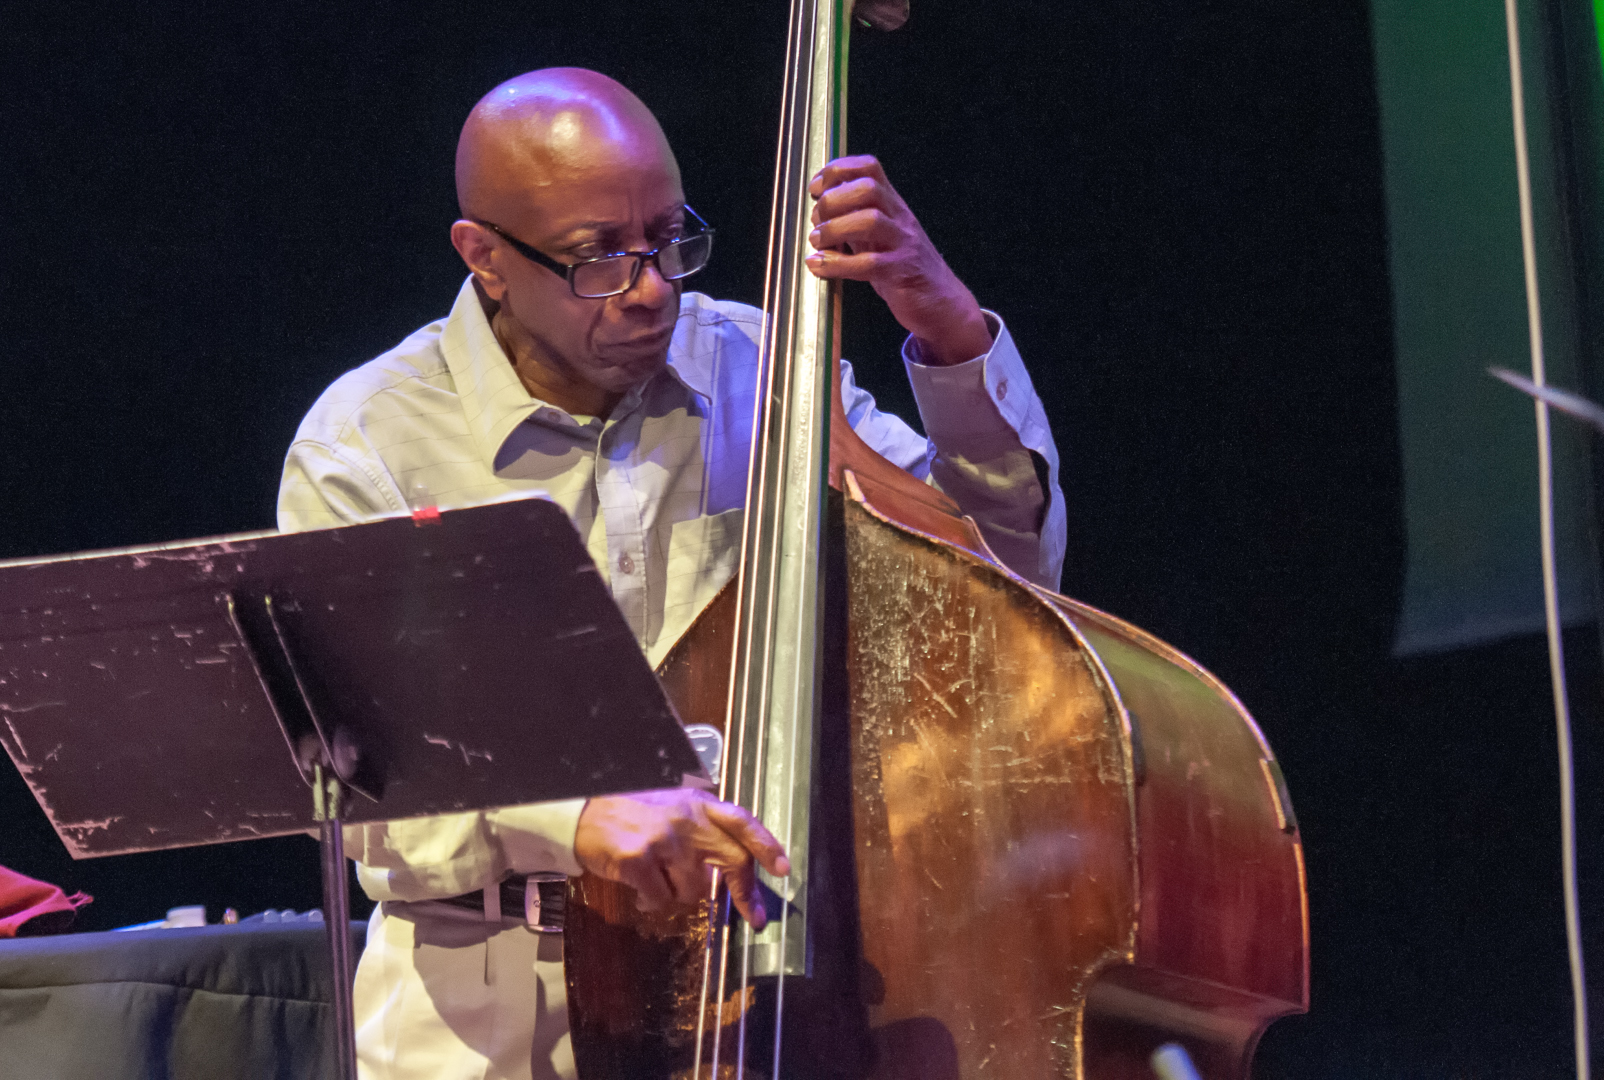 Reggie workman with trio 3 at the vision festival 2012